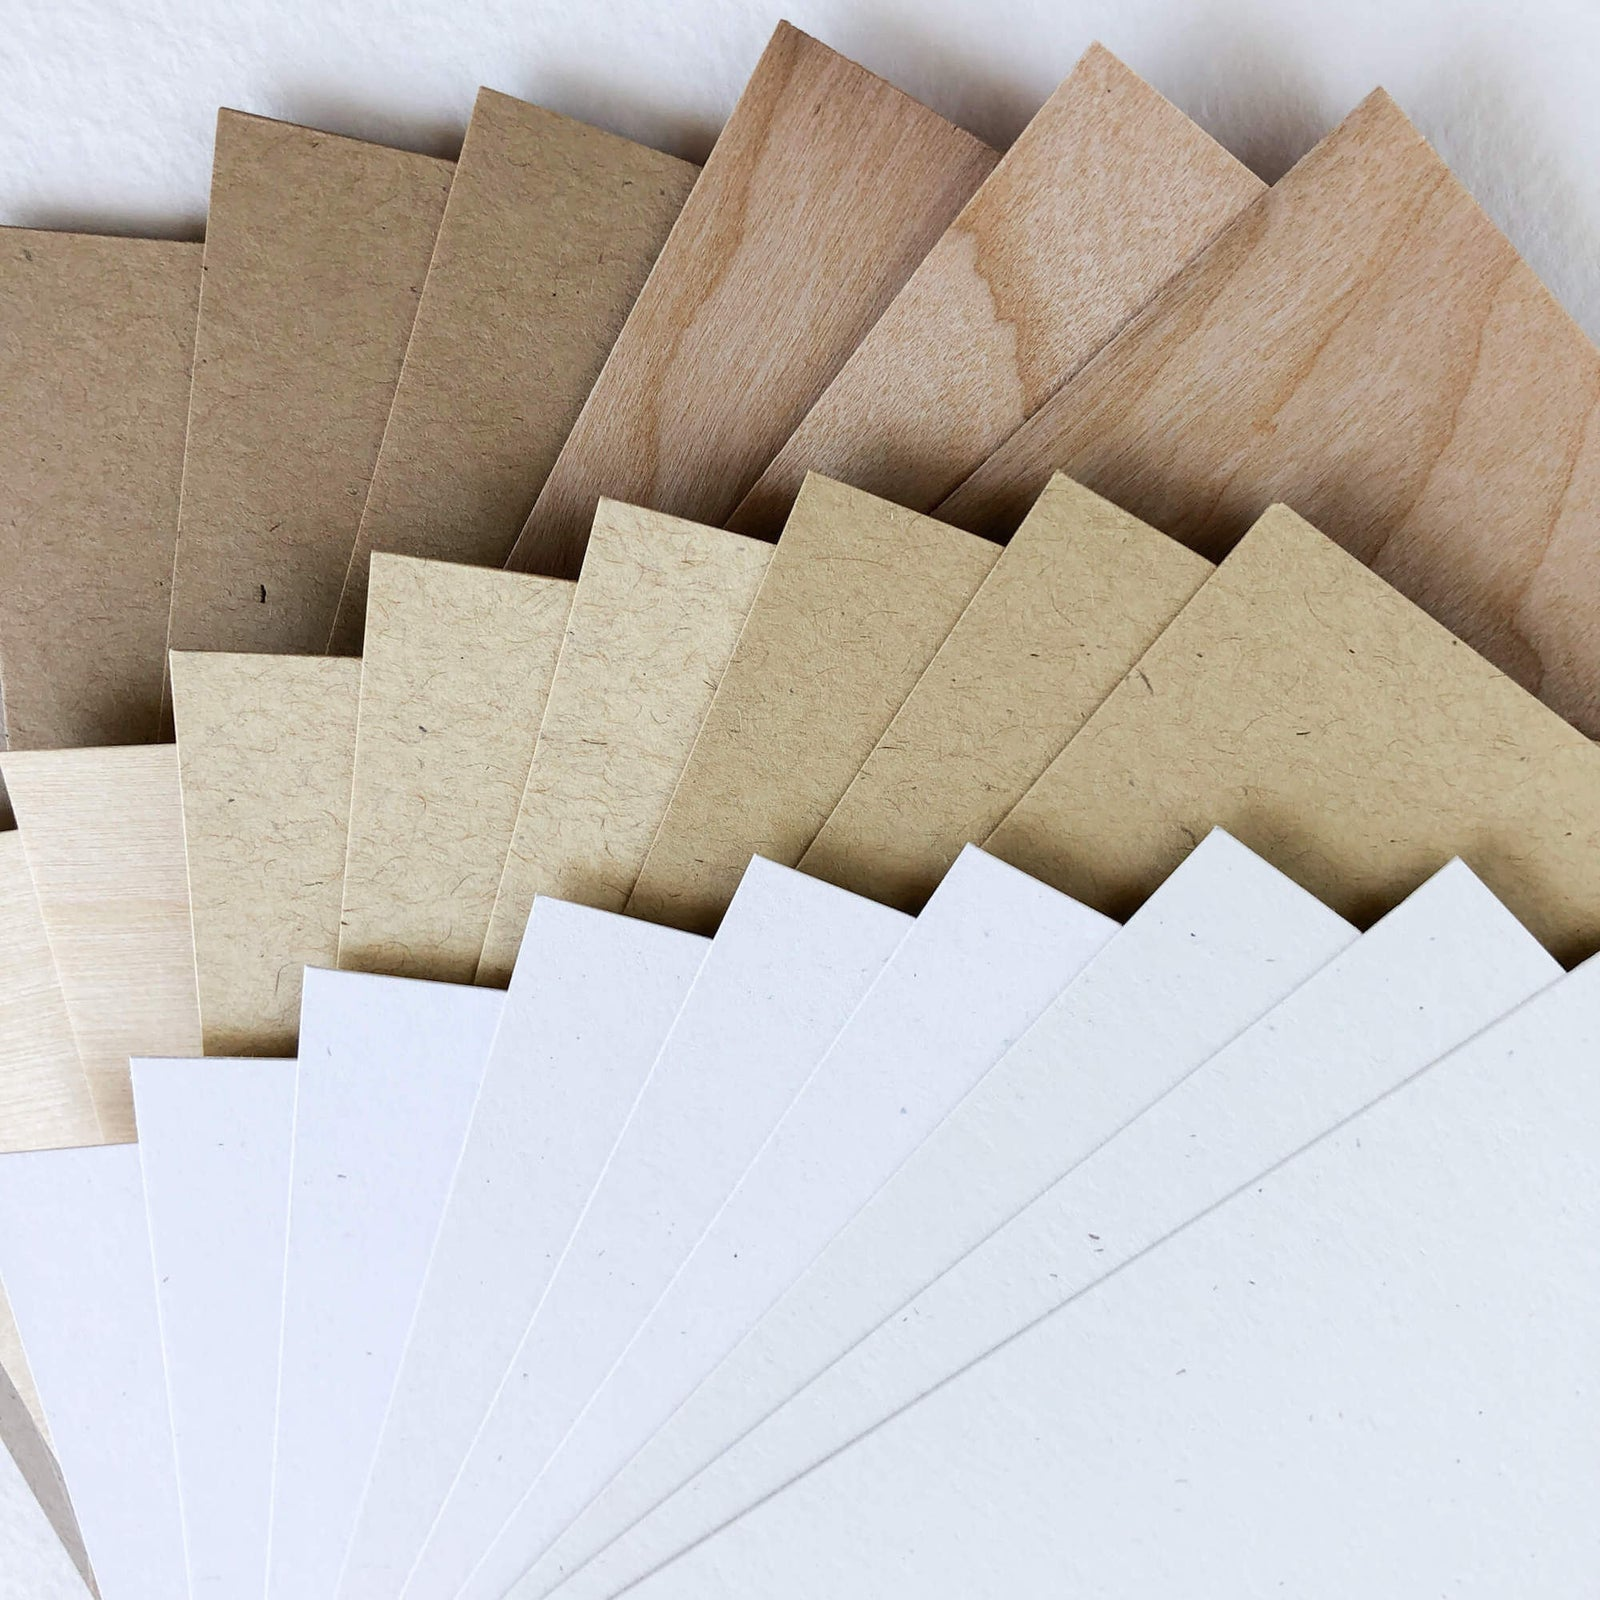 Scrapbooking Cre8-a-Page Papers 67# lb Card Stock 25 Sheets 8.5x11 White Smooth Cardstock